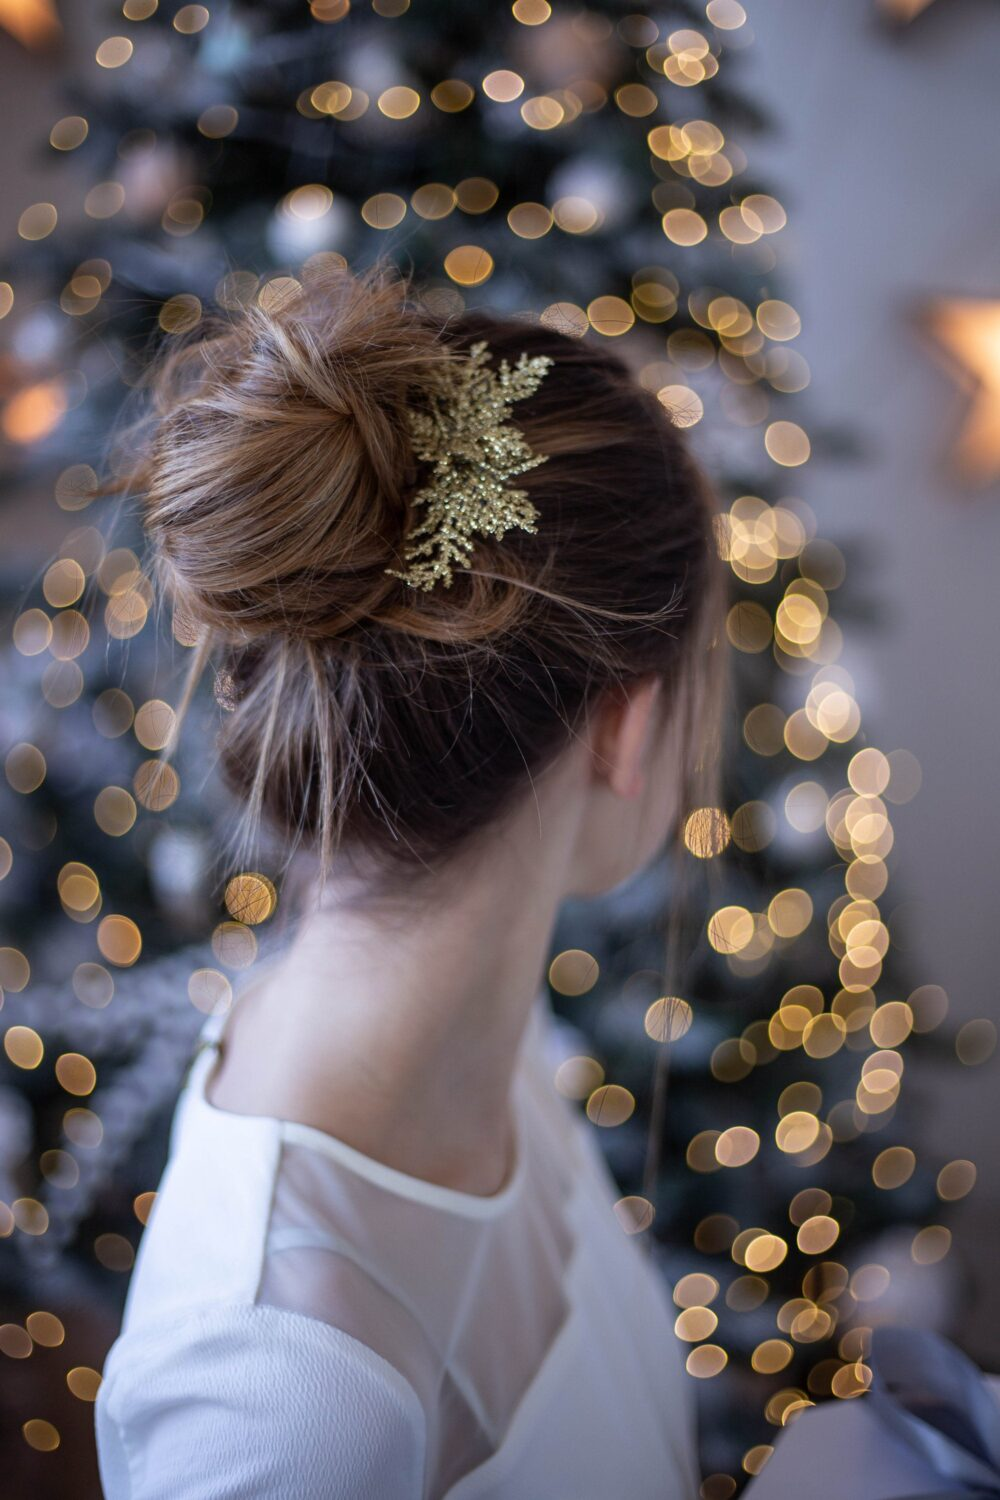 Winter Wedding Hair Accessories Christmas Comb Silver Hairpiece Gold Glitter Headpiece Bridal Bridesmaids